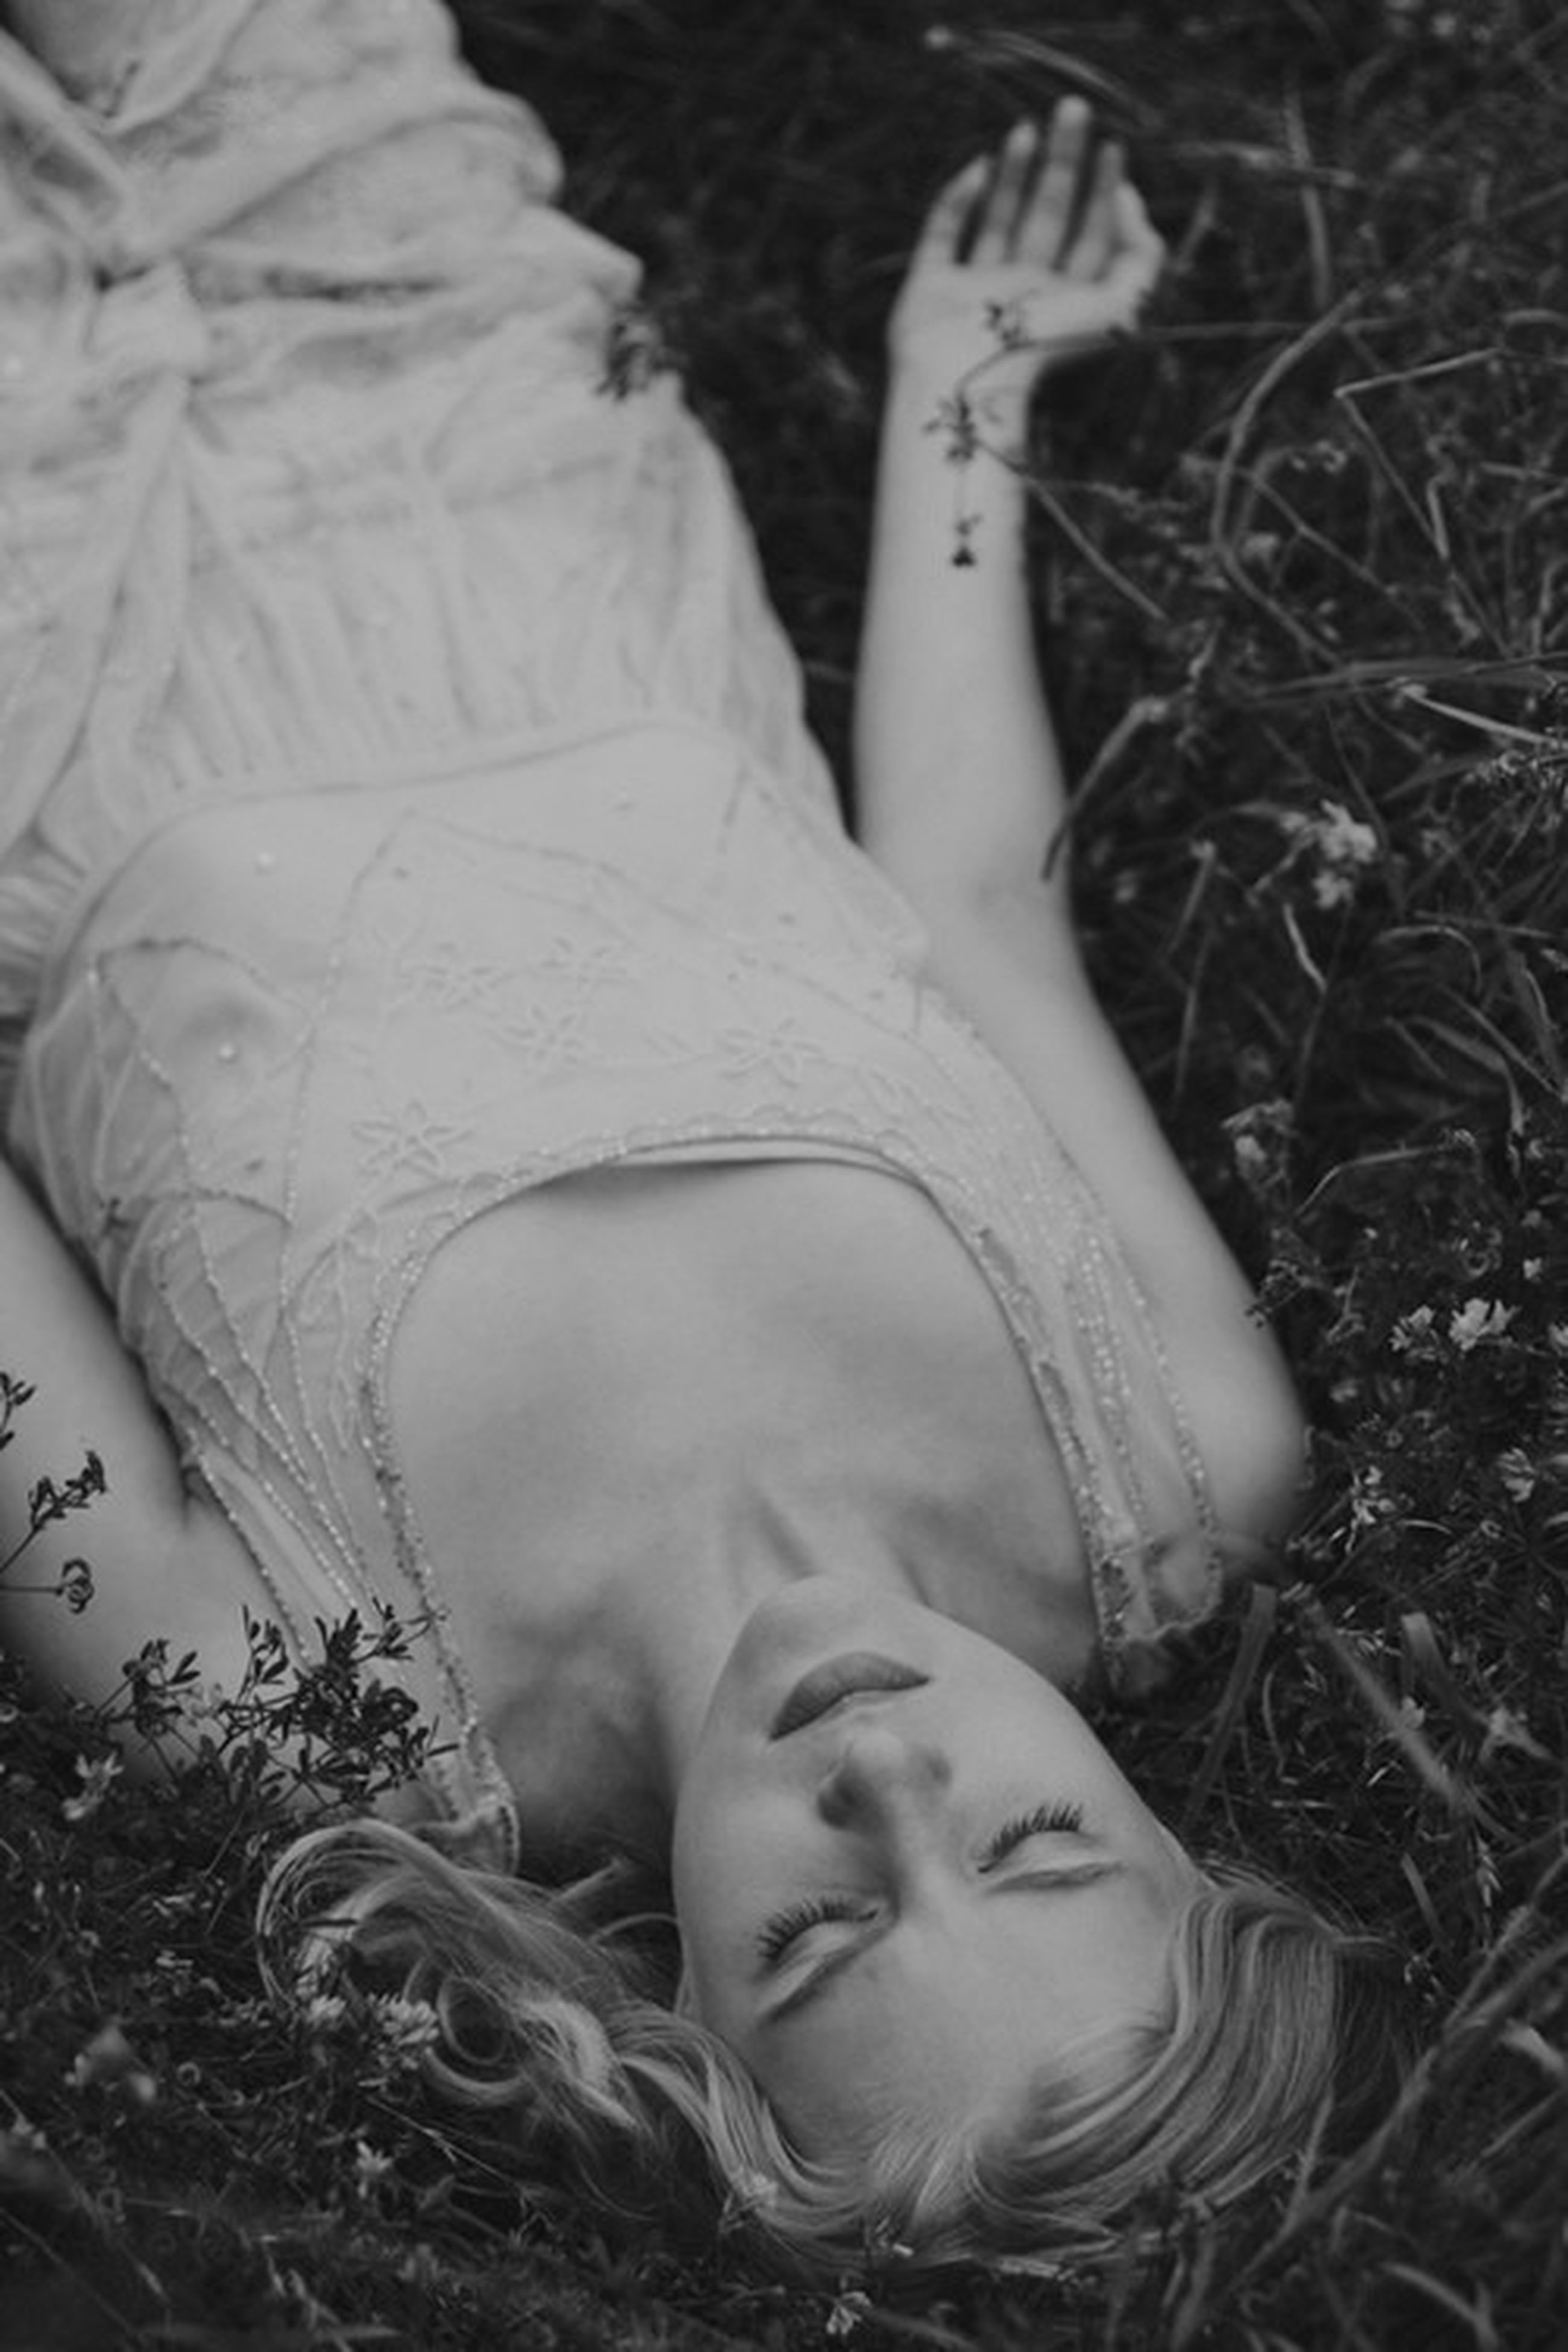 lifestyles, leisure activity, person, relaxation, lying down, childhood, high angle view, young adult, young women, casual clothing, grass, innocence, elementary age, girls, eyes closed, lying on back, resting, cute